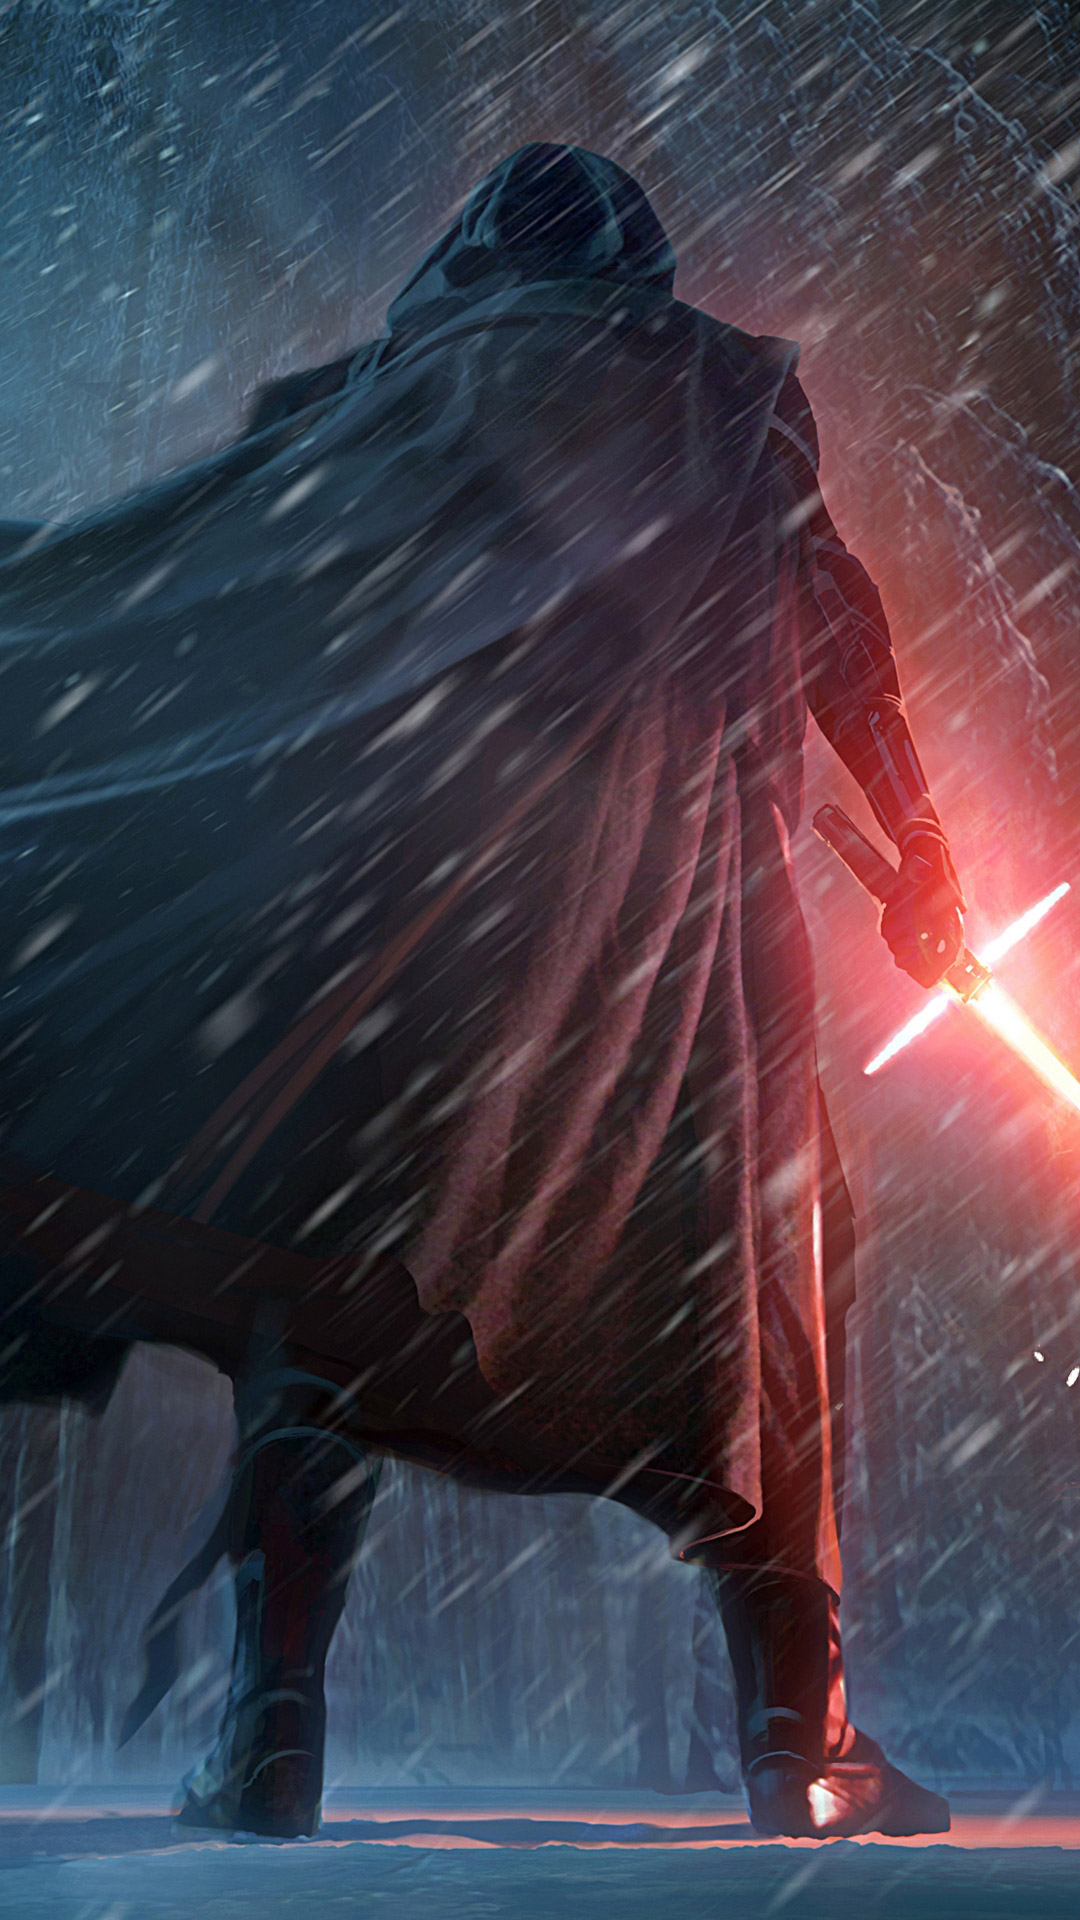 Star-Wars-The-Force-Awakens-Wallpaper-Kylo-Ren-Snow-Scene